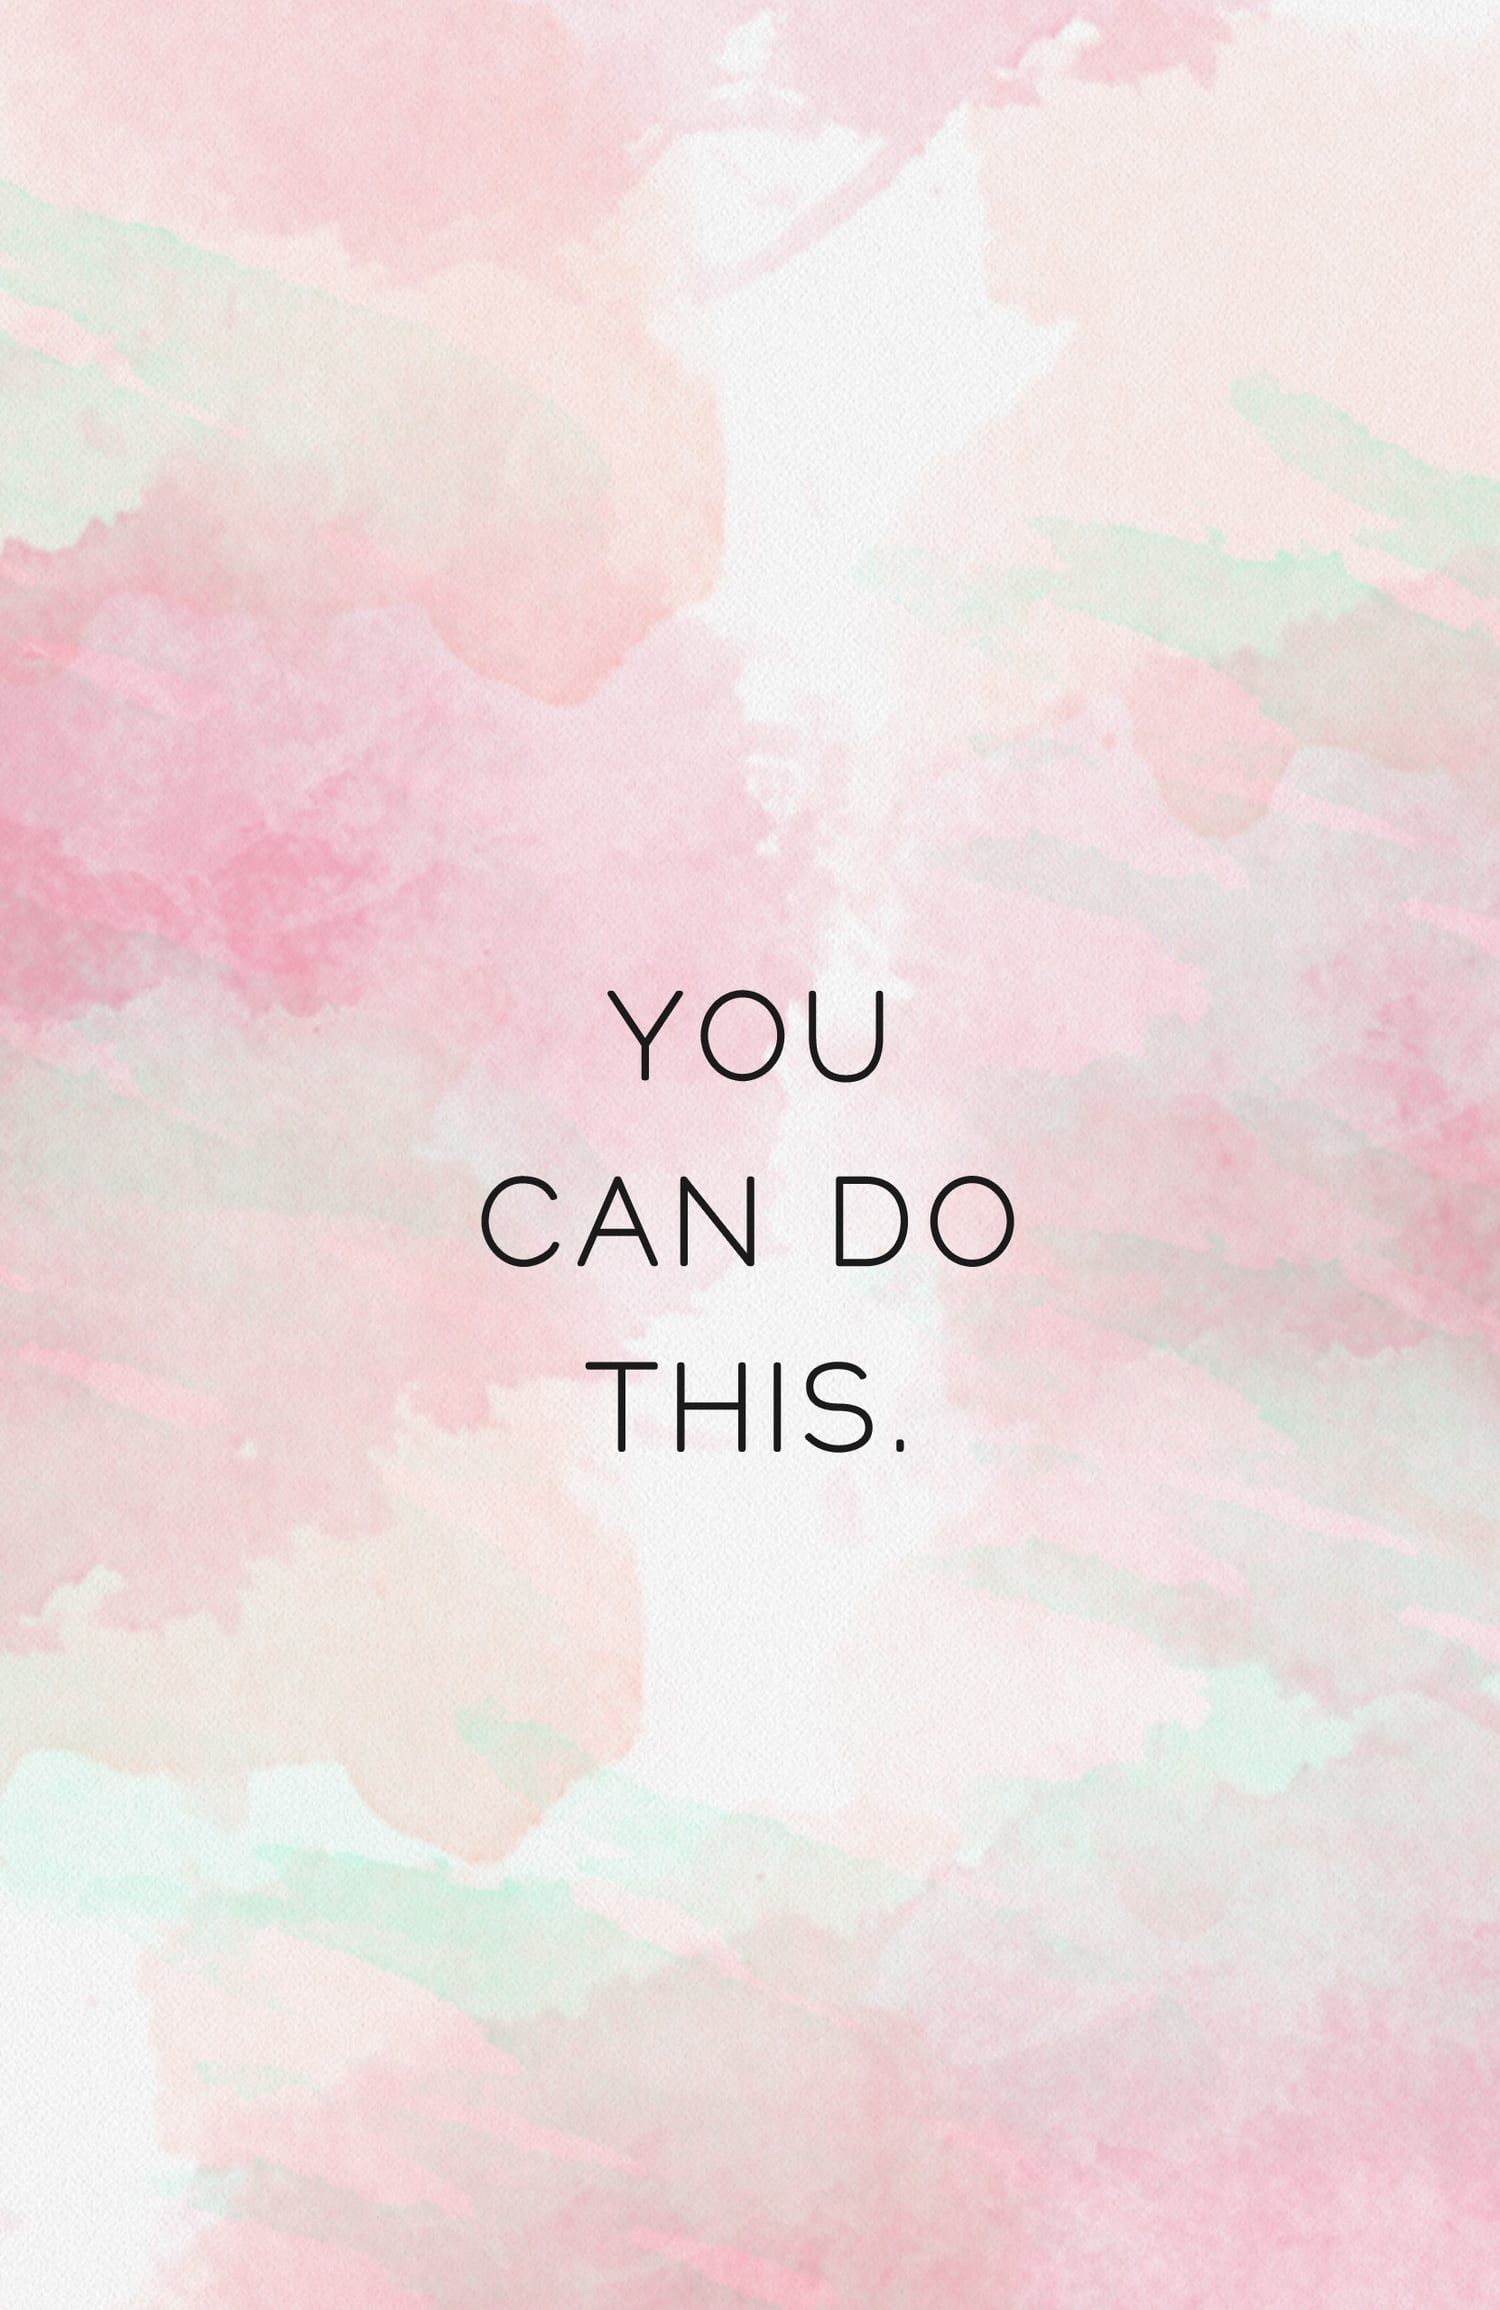 You Can Do This Shannon Did What Travel Adventure Blog Wallpaper Quotes Mom Boss Quotes Fitness Motivation Wallpaper